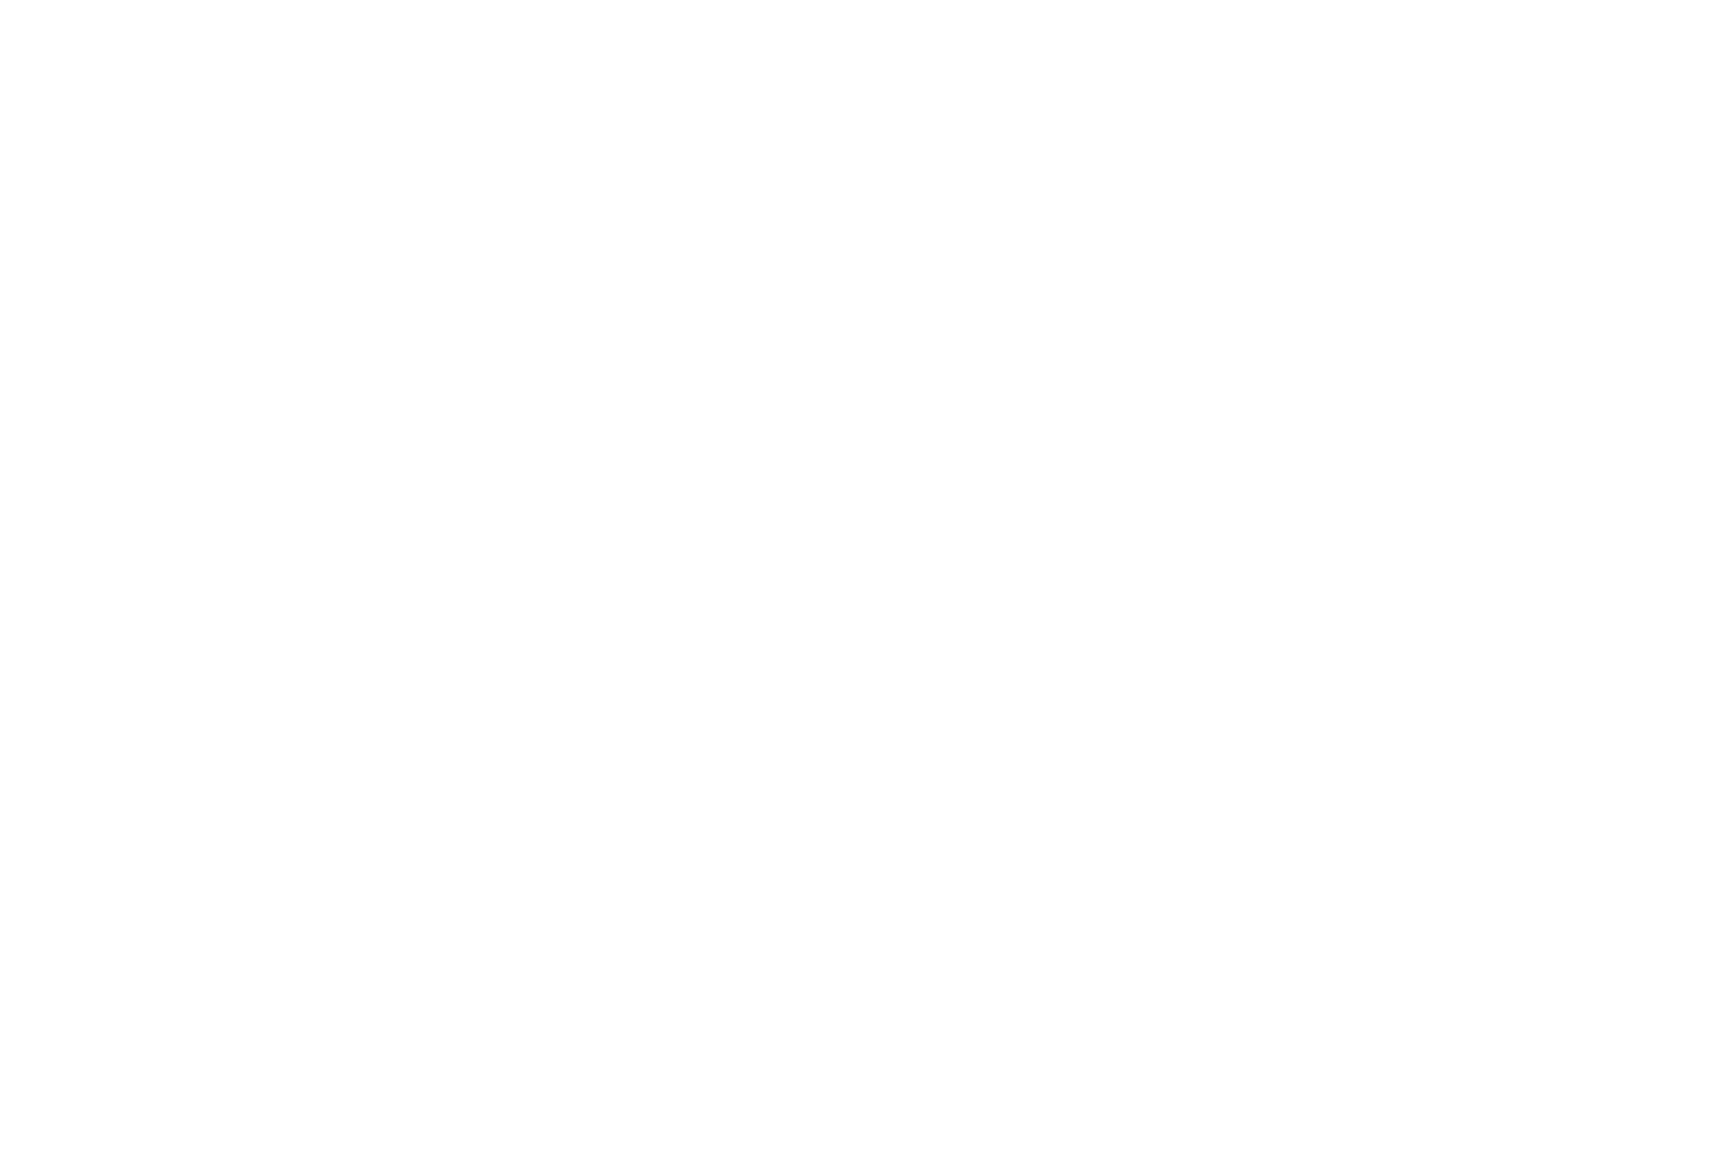 HONORABLE MENTION - Idyllwild International Festival of Cinema - USA copy.png